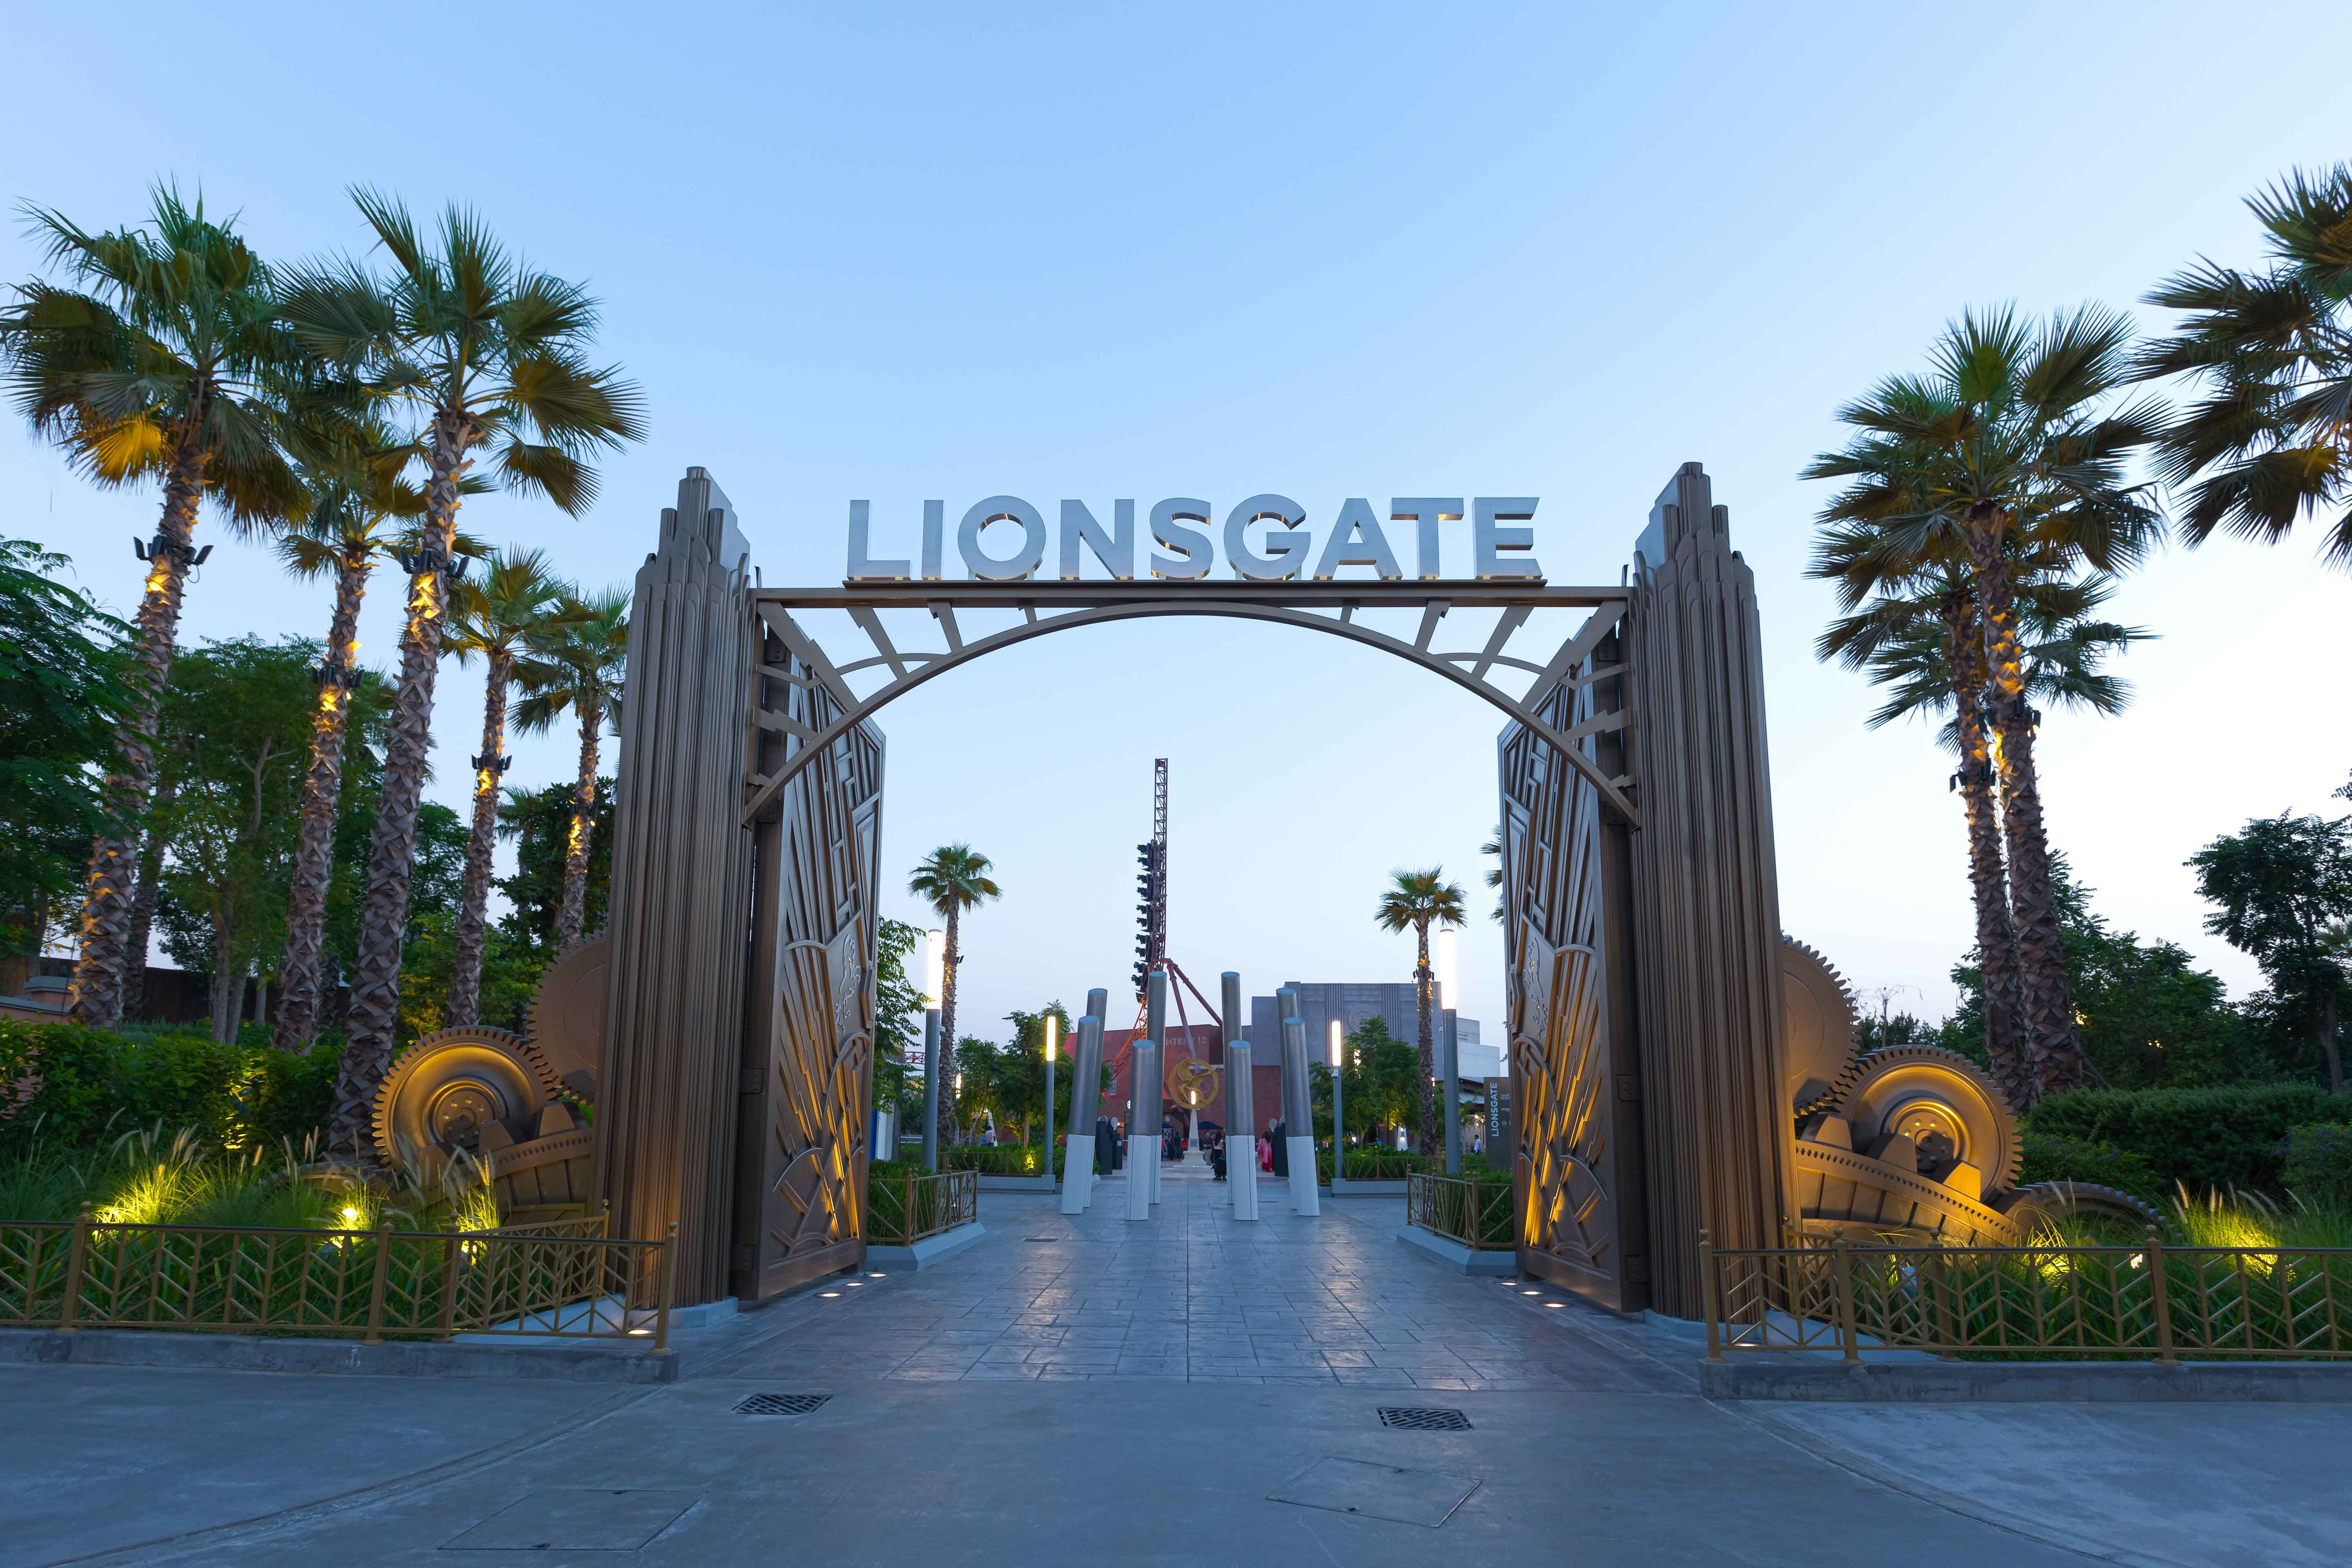 Entrance to Lionsgate's land at Motiongate Dubai.